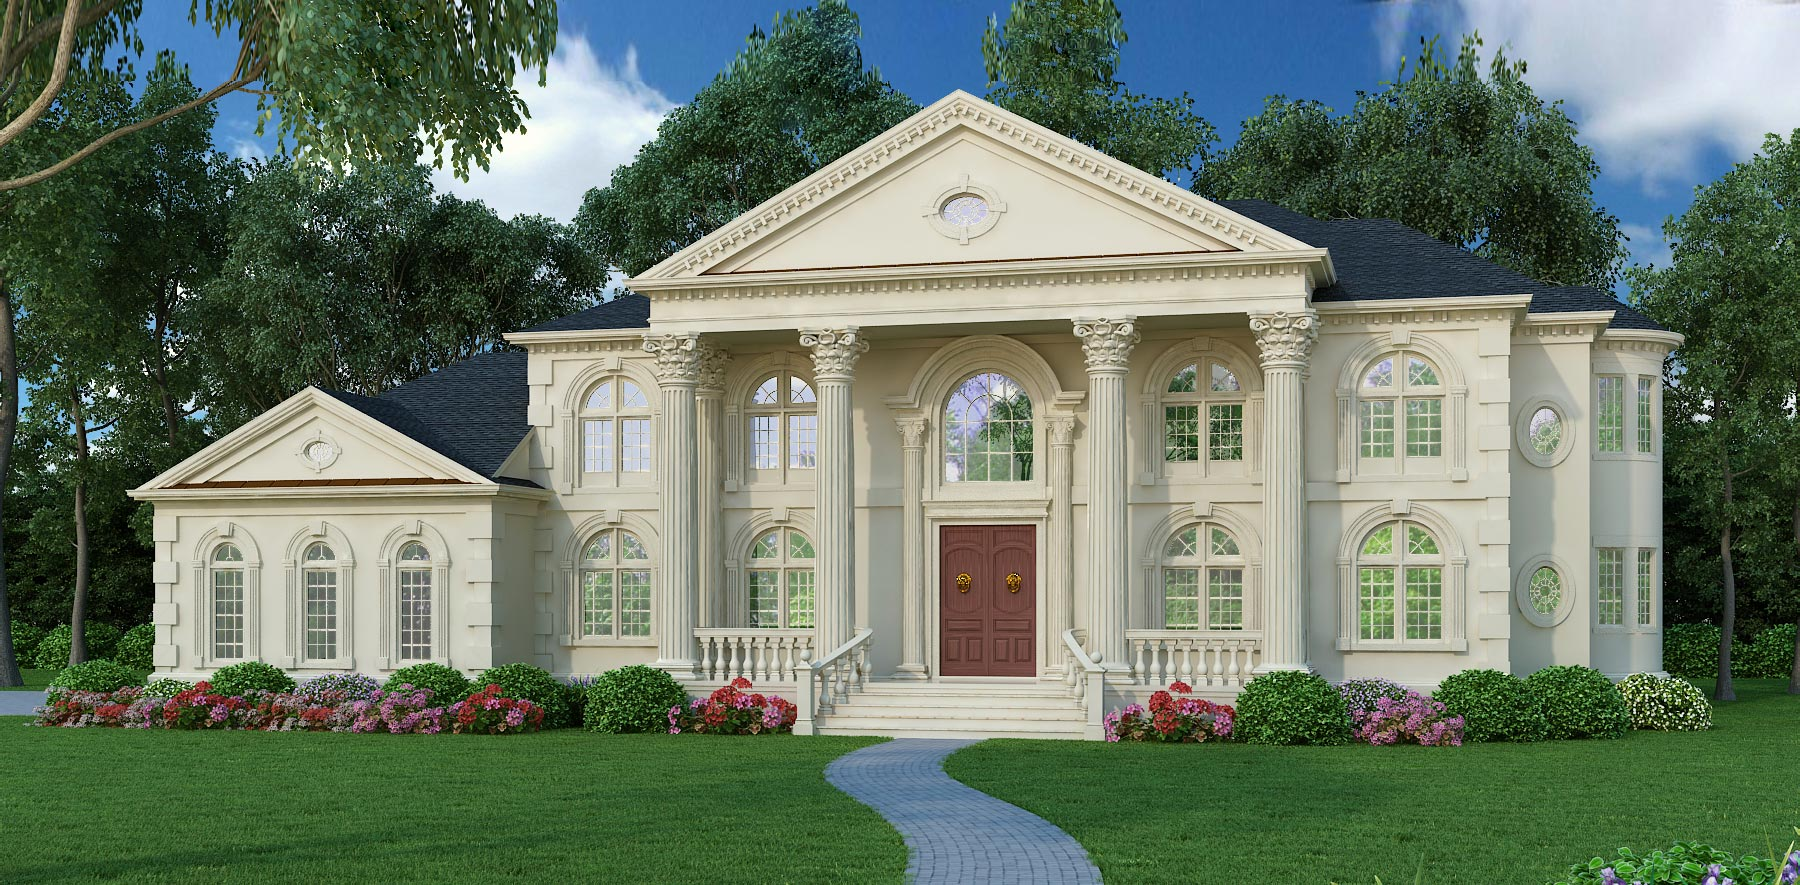 Colonial house plan 5 bedrms 4 5 baths 5699 sq ft for Mansion house design